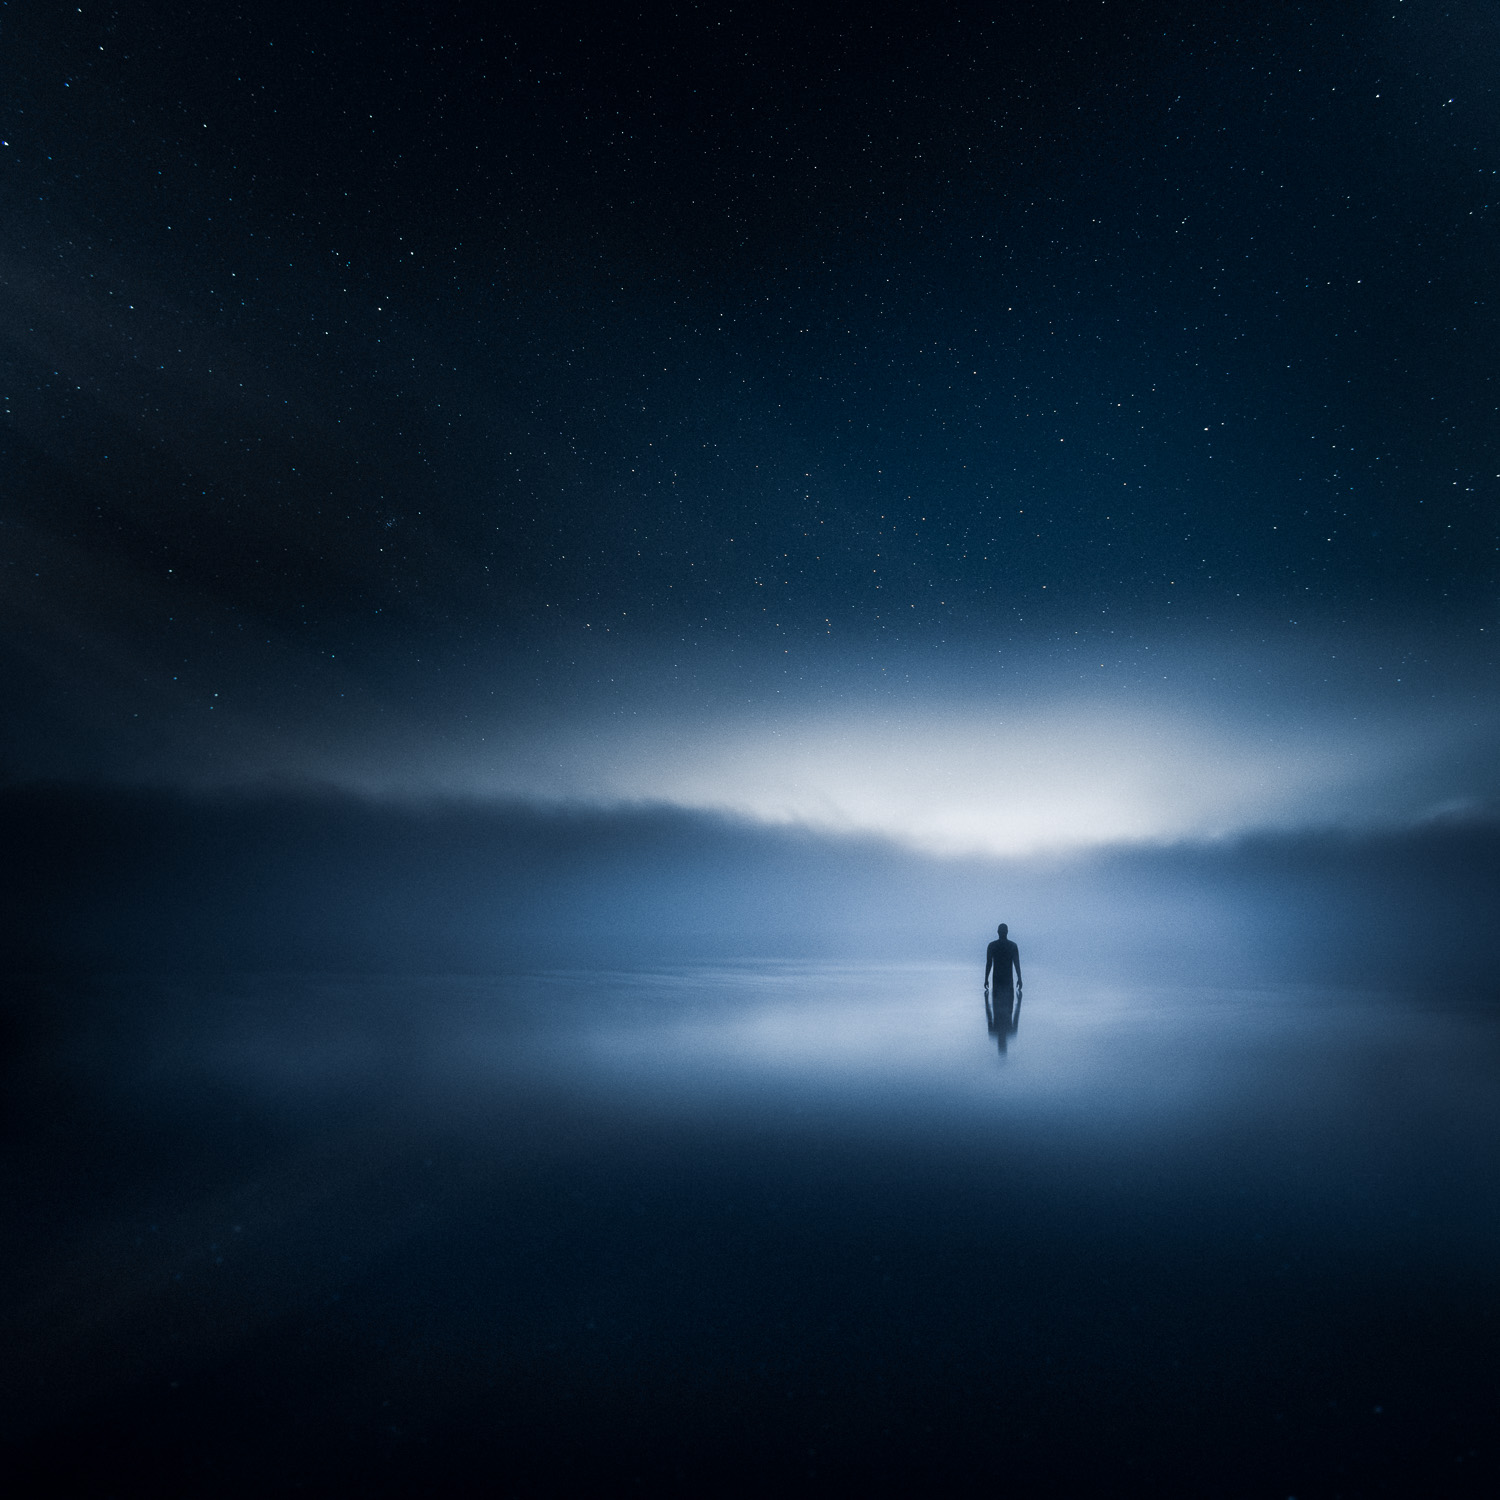 Mikko-Lagerstedt-Endless-Depths.jpg